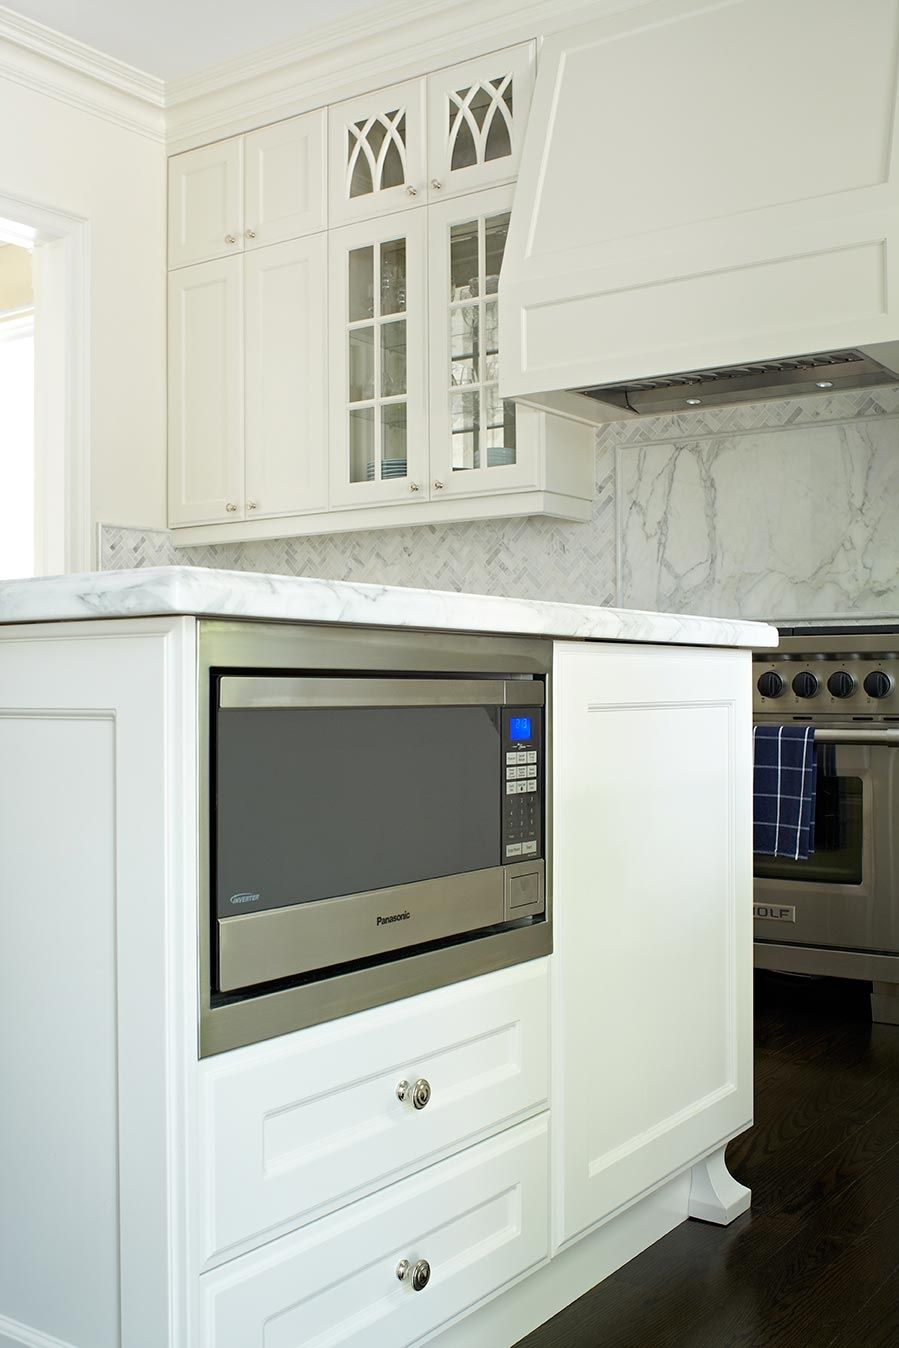 microwave inside the kitchen island